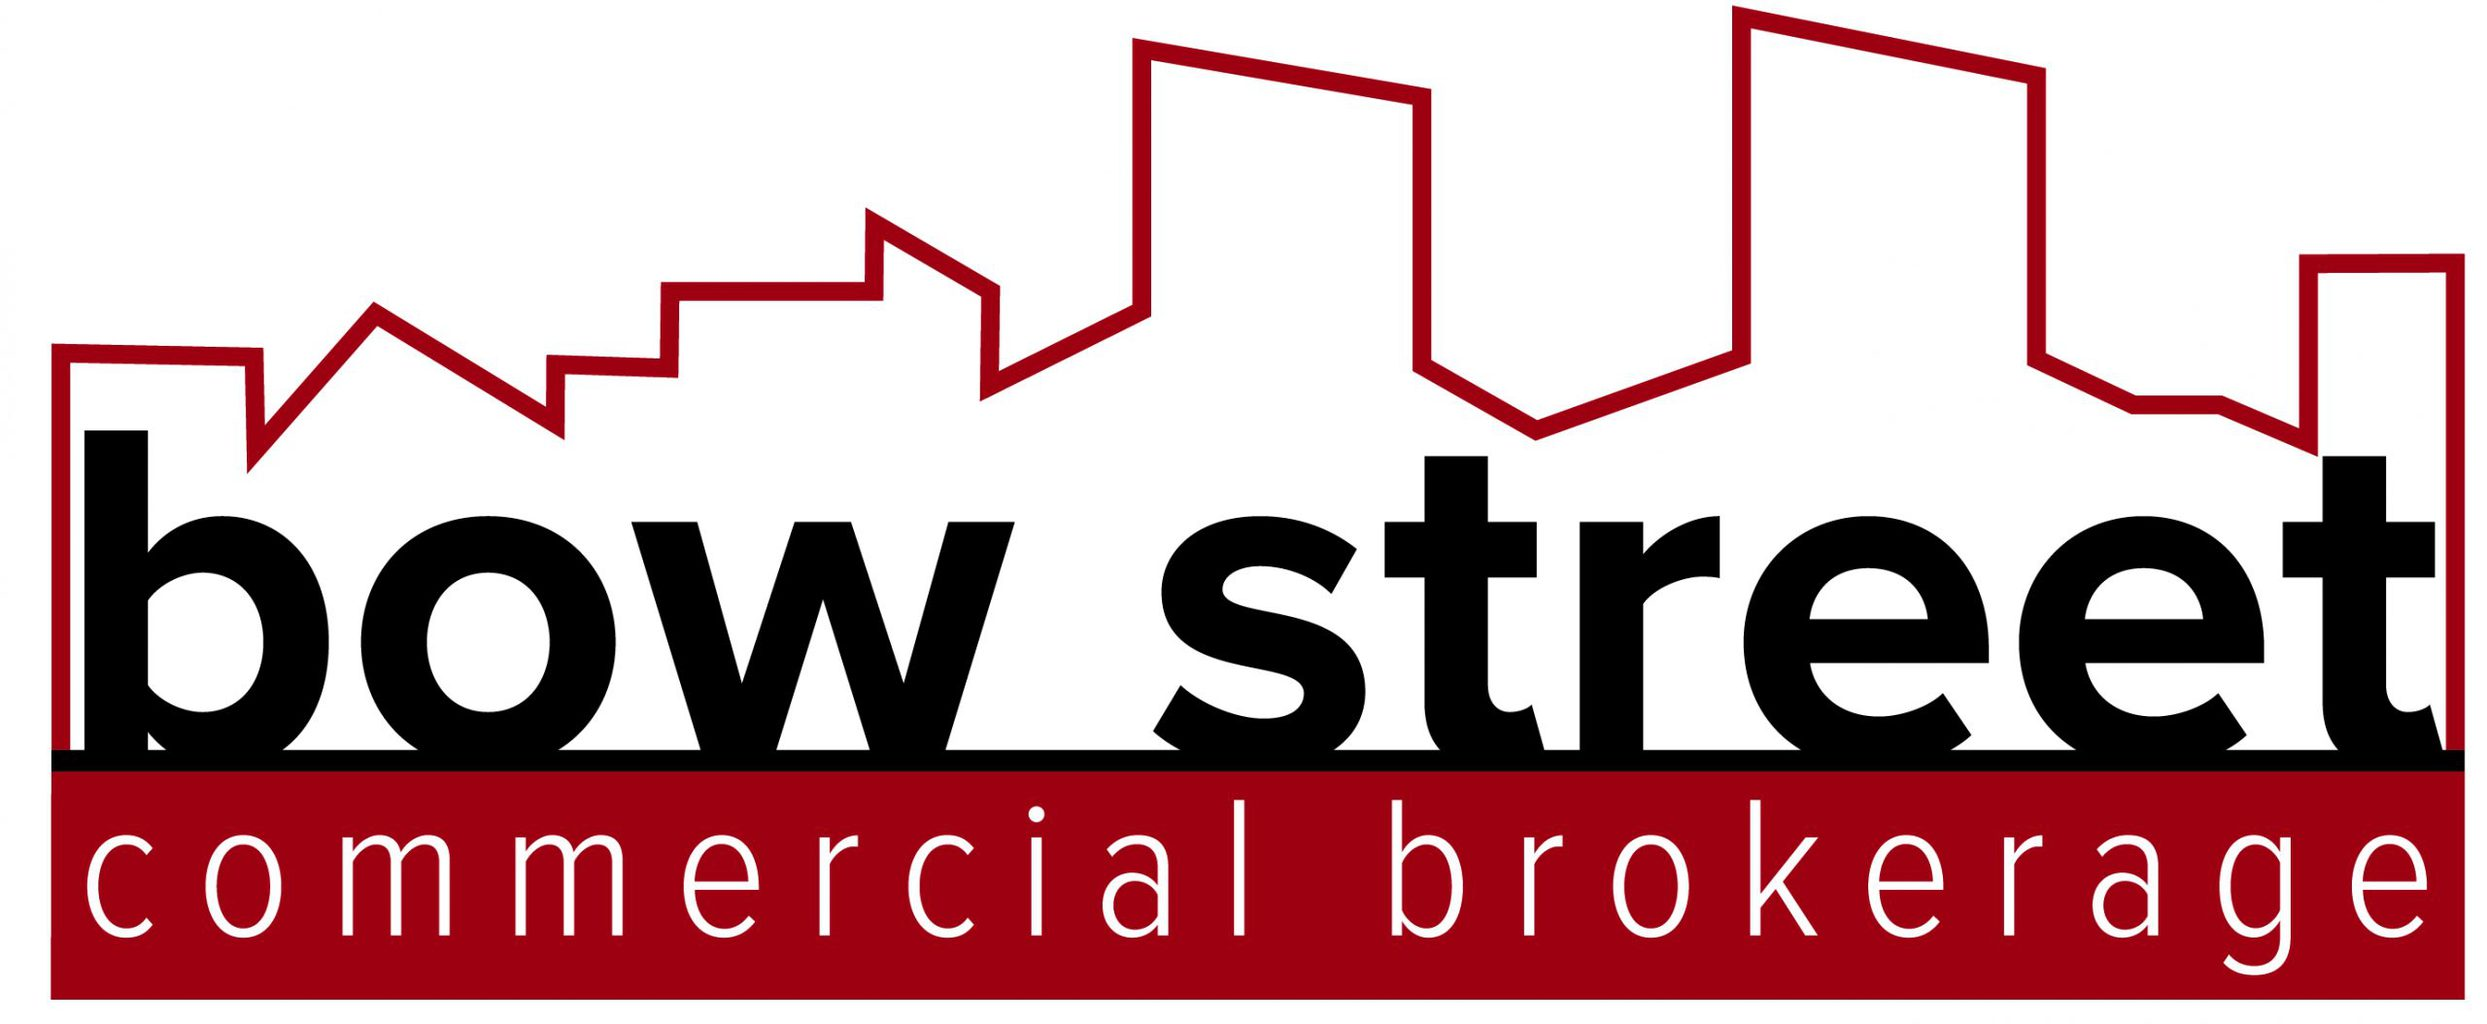 Bow Street Commercial Brokerage | Commercial Real Estate |  Portsmouth,NH